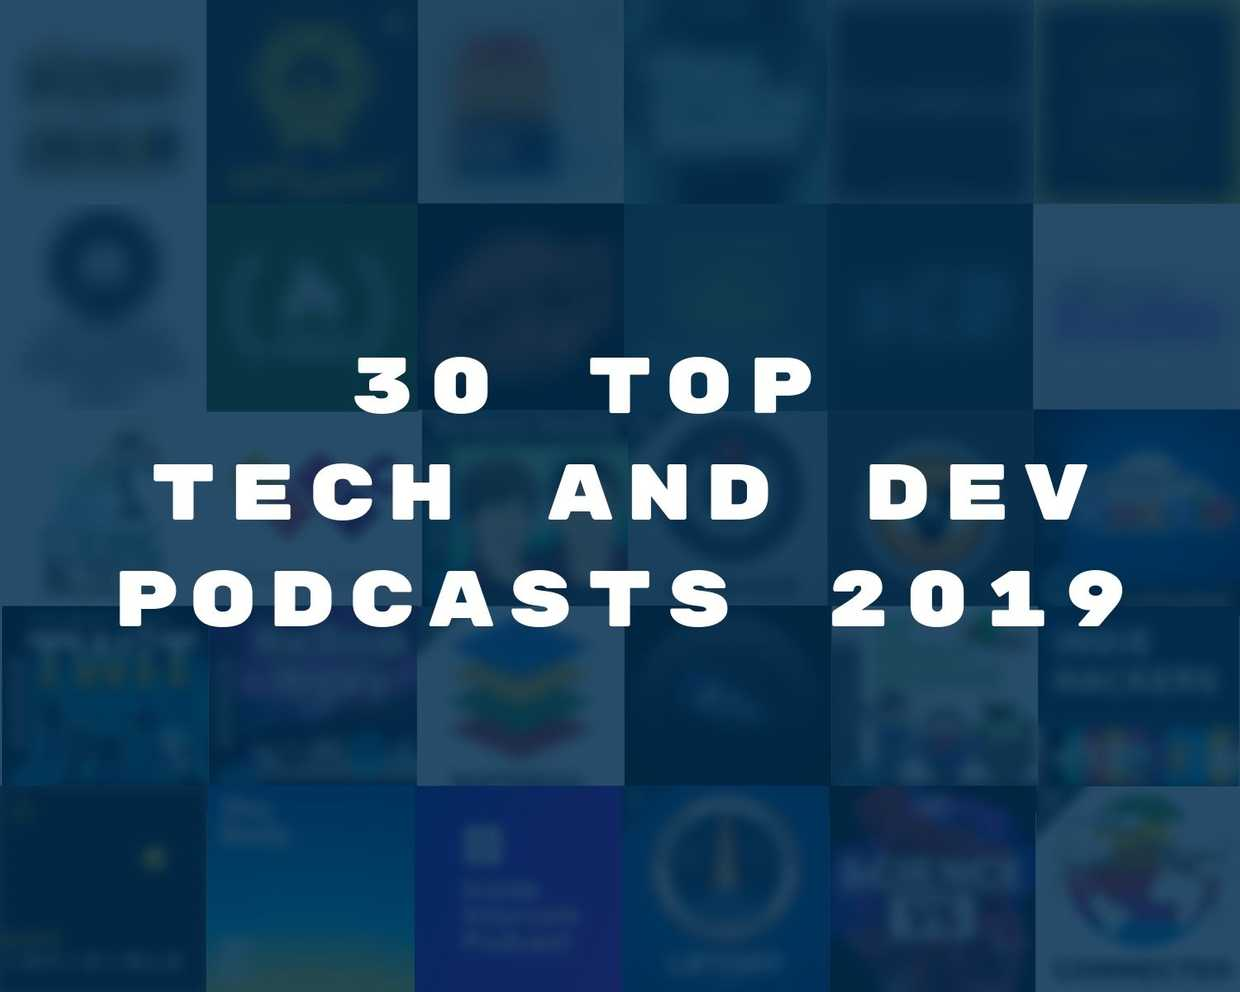 30 Top Tech and Dev Podcasts in 2019 cover image